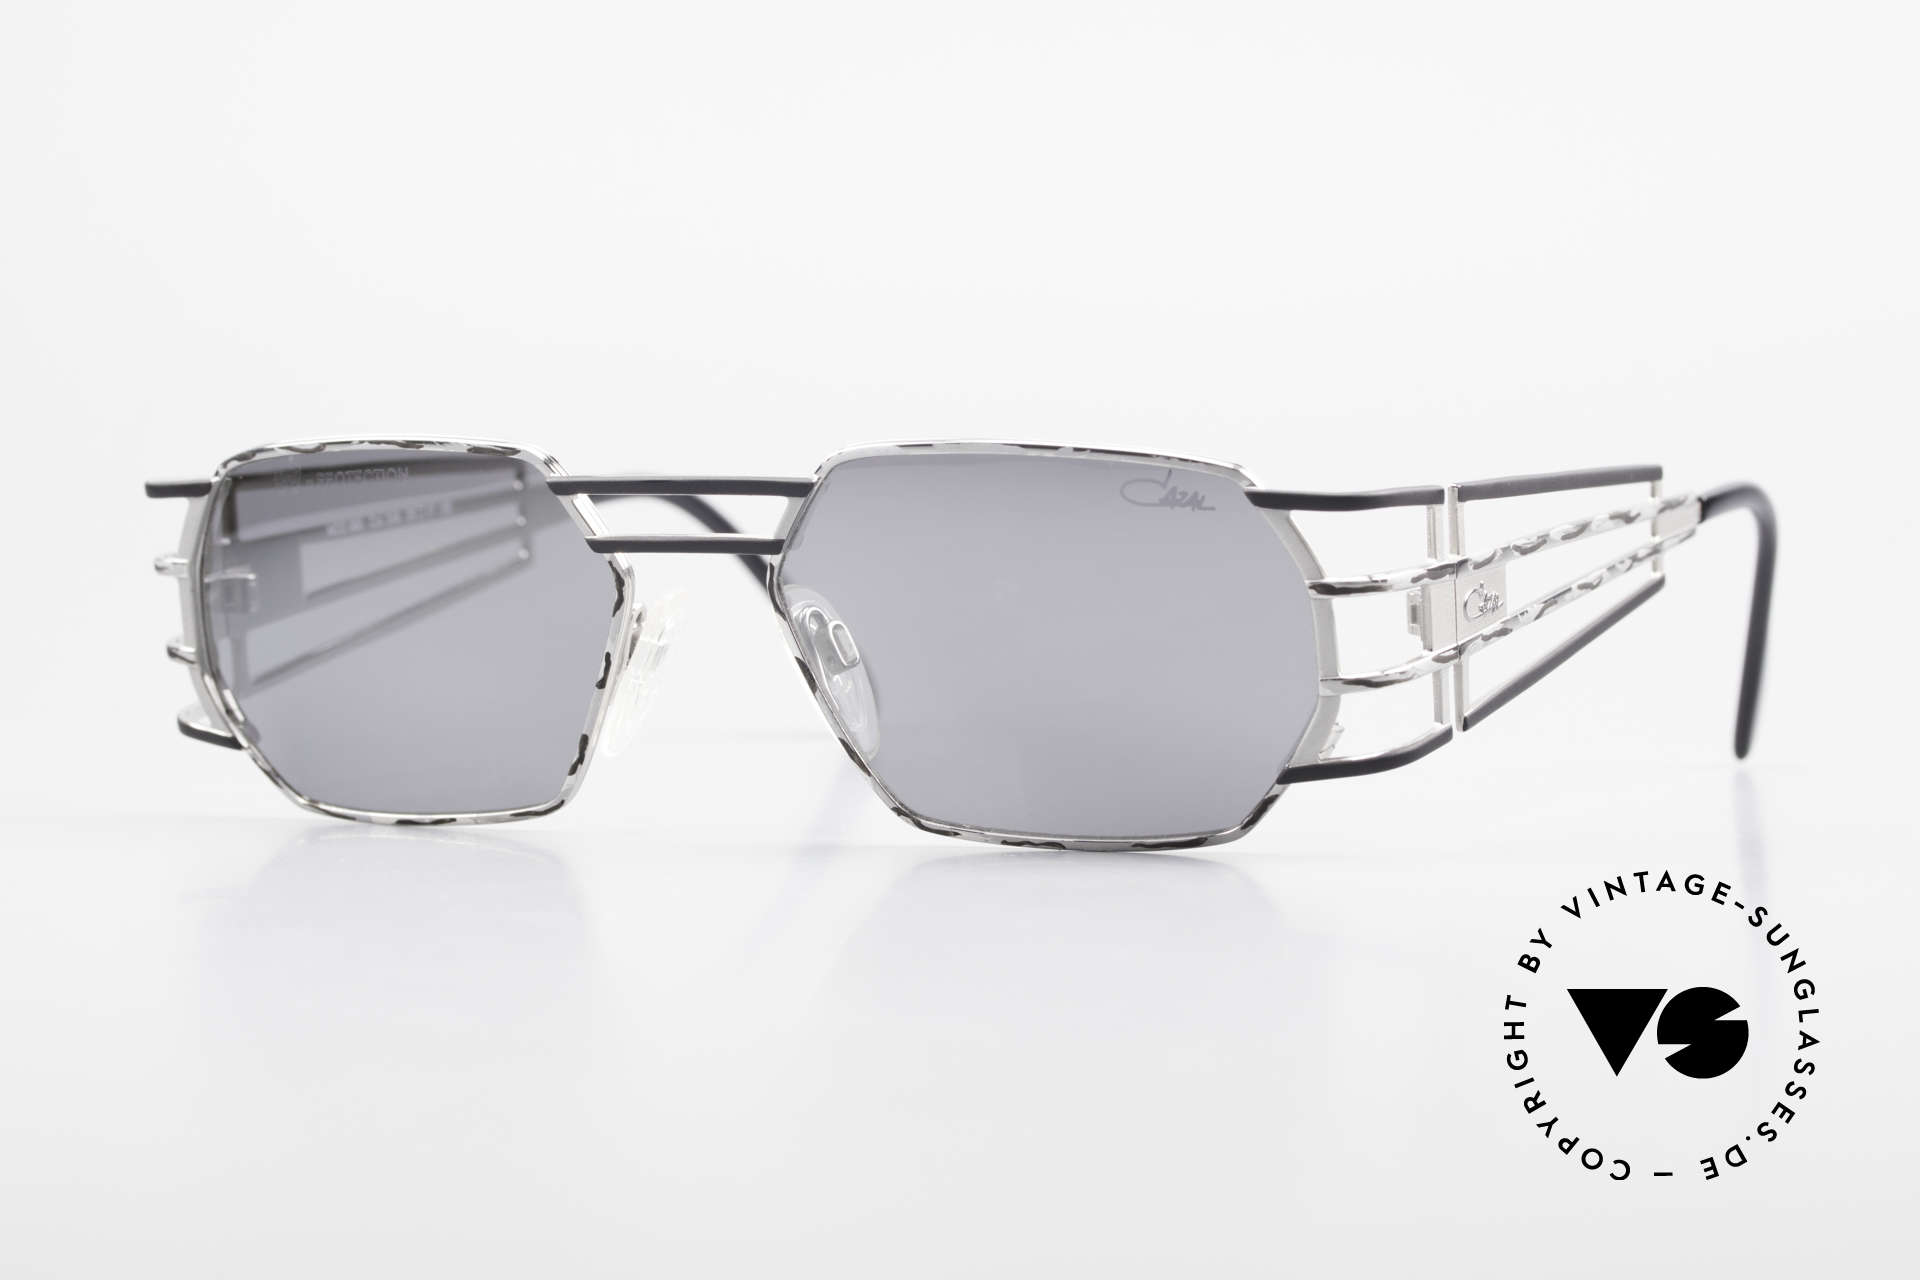 Cazal 980 Mirrored Designer Sunglasses, futuristic vintage CAZAL designer sunglasses from 1997, Made for Men and Women